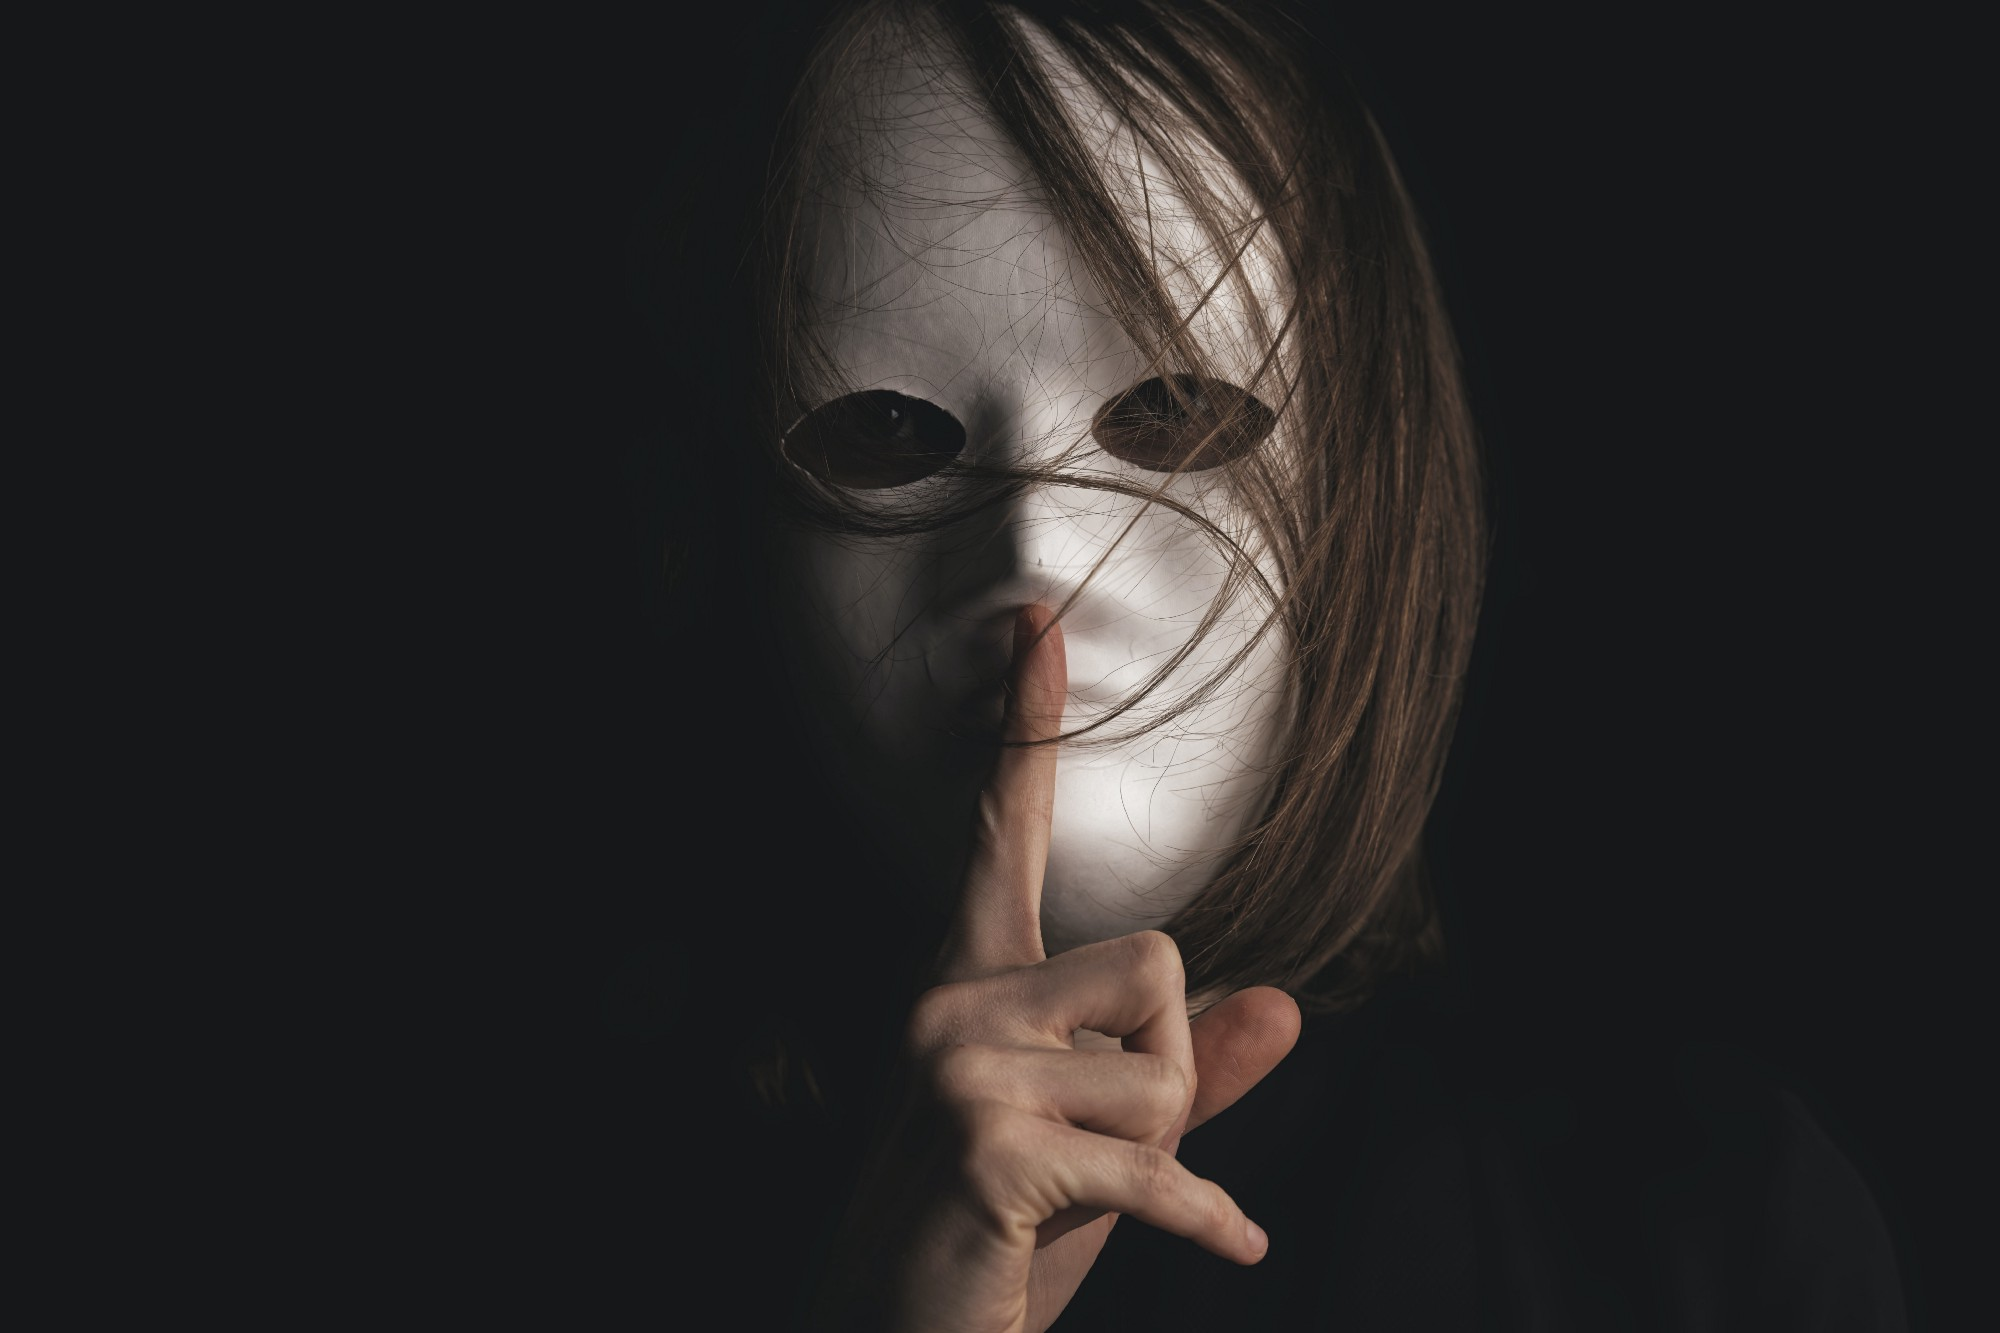 Woman with white full-face mask holding a finger up to her lips.